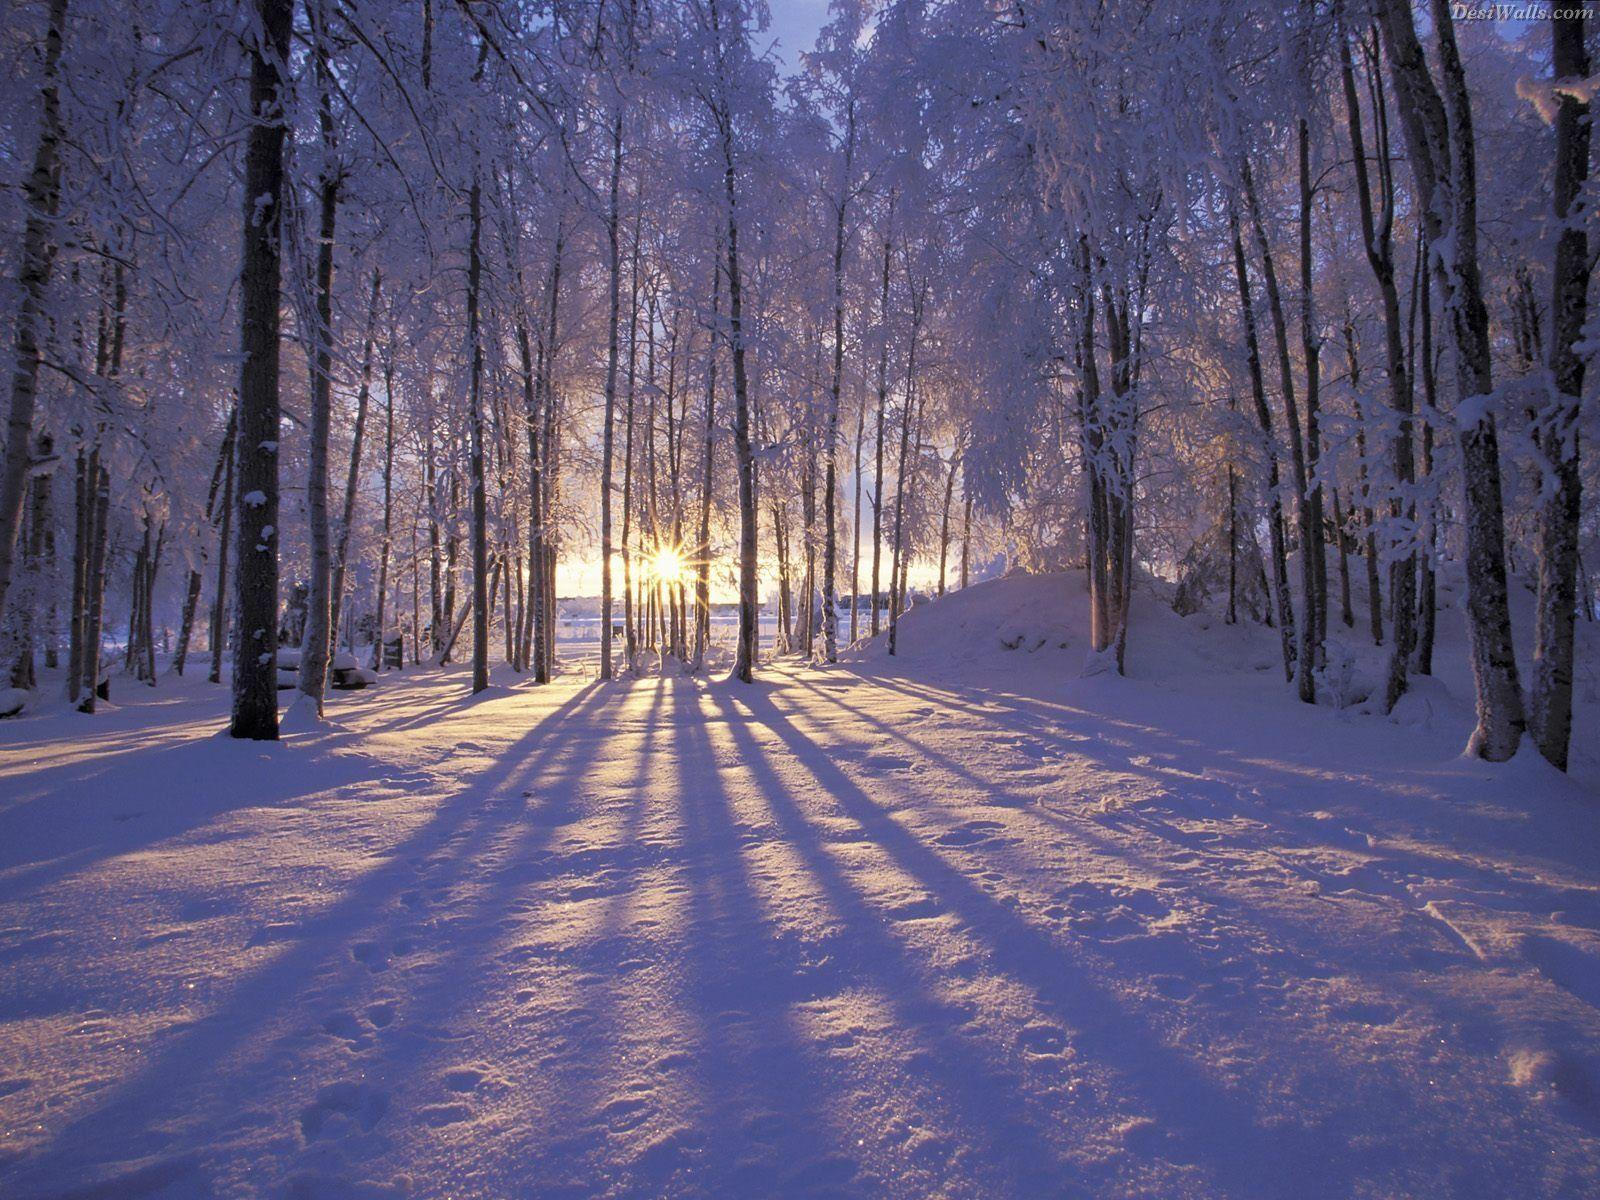 Wondeful Winter wallpaper - cynthia-selahblue (cynti19) Wallpaper ...